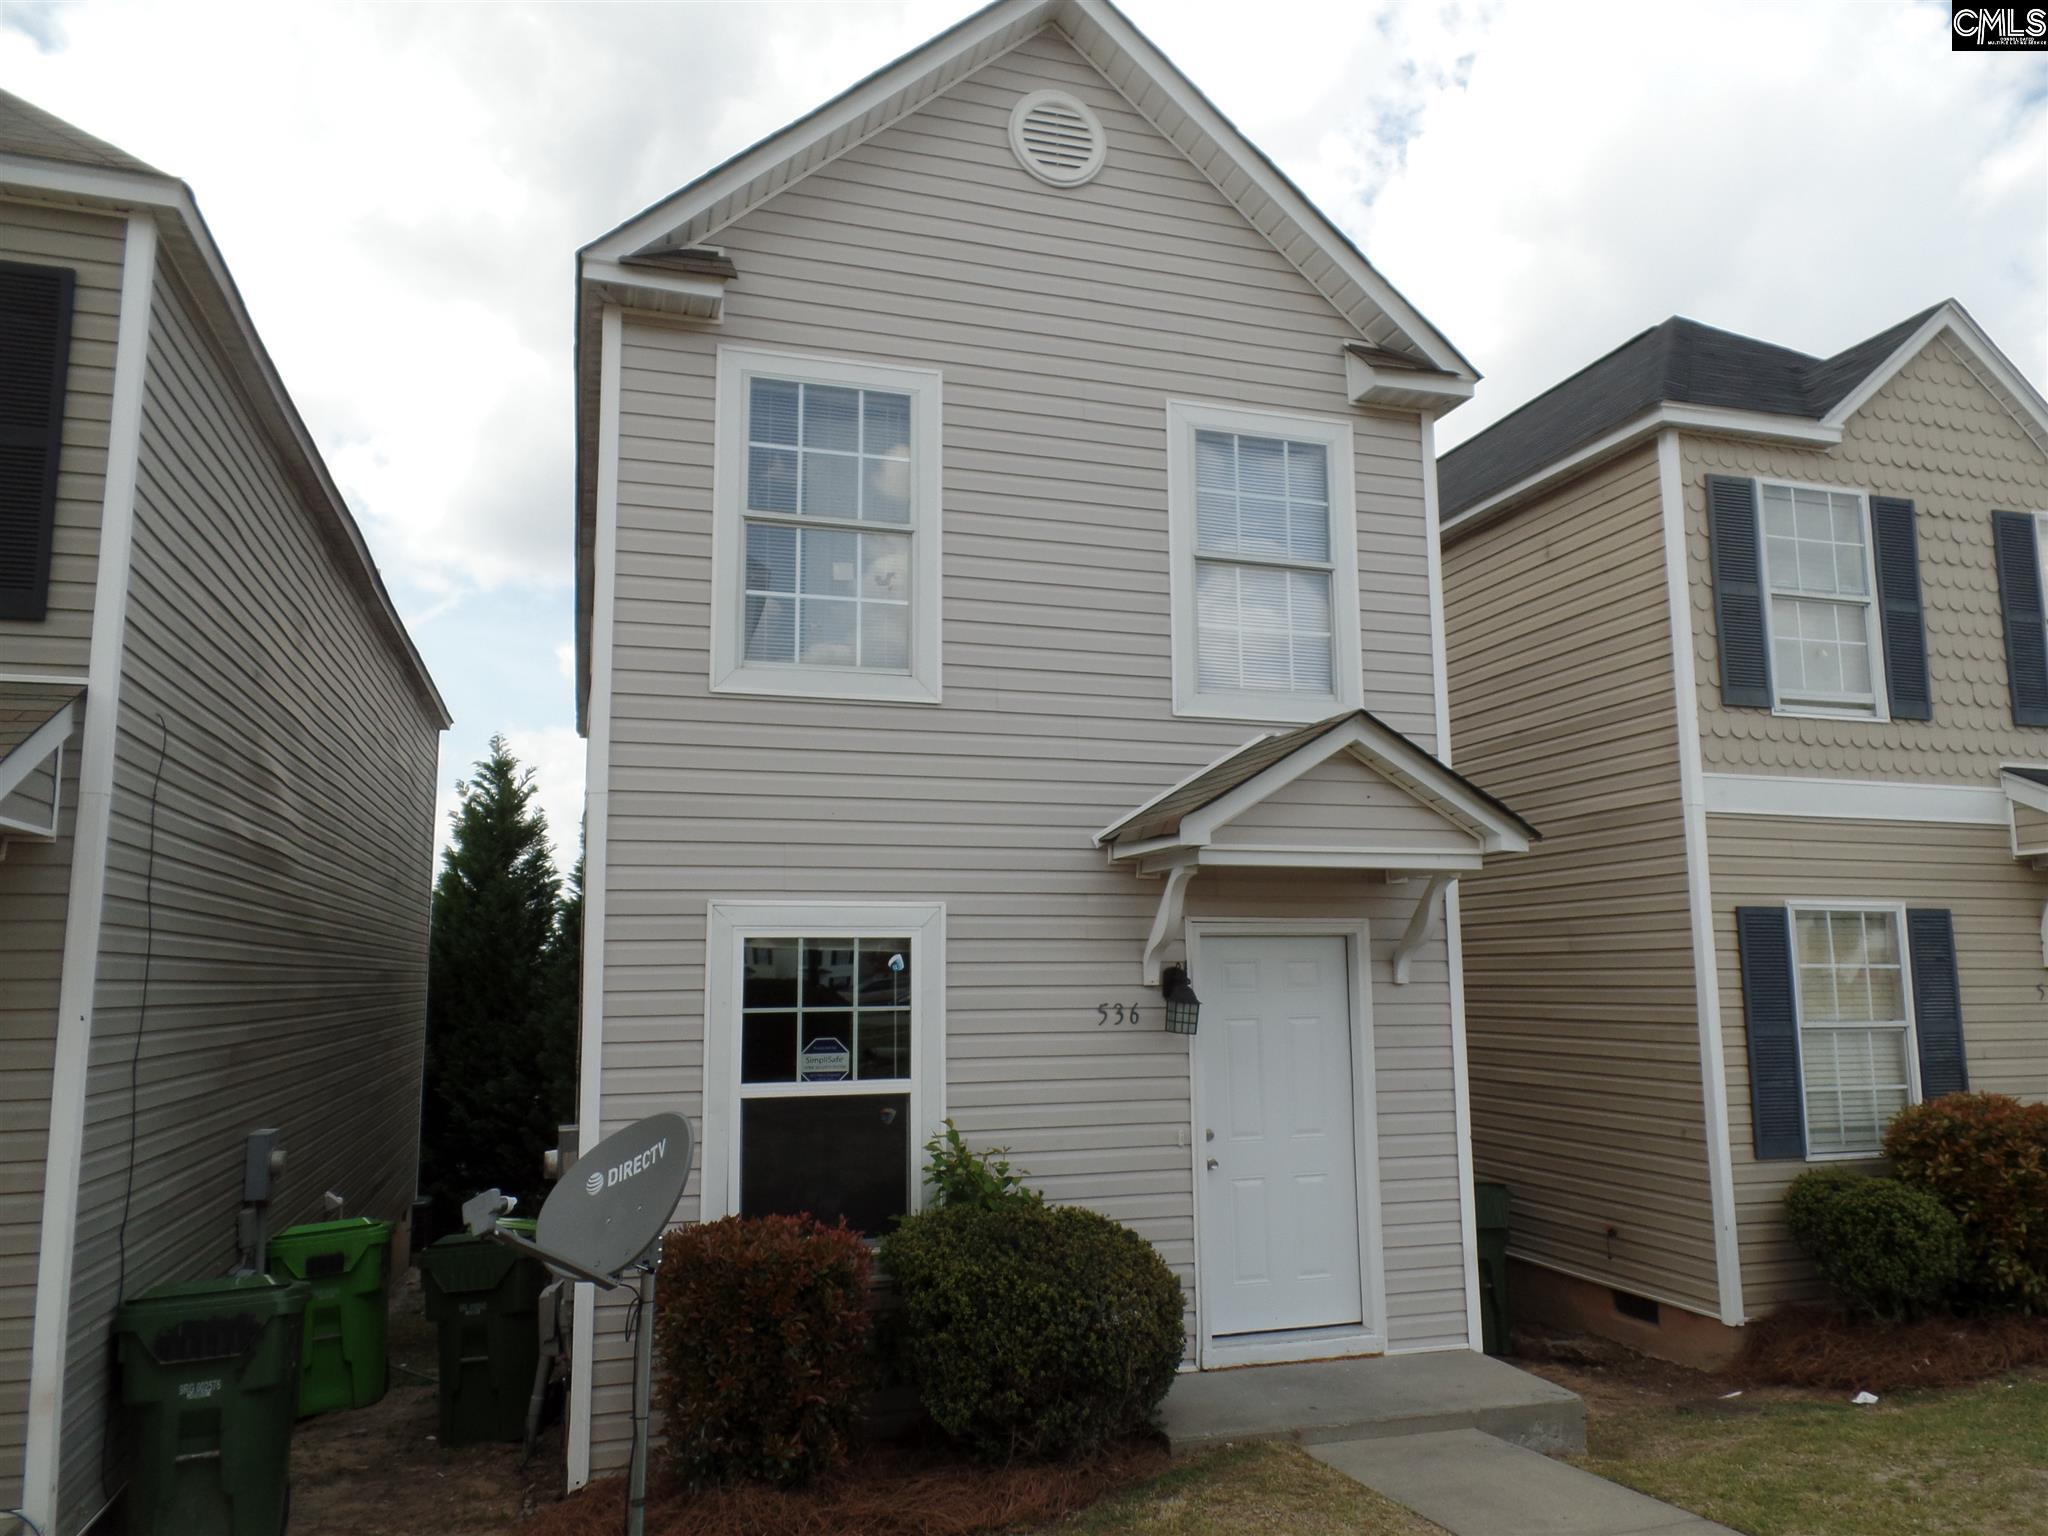 536  Summit Terrace Columbia, SC 29229-7173